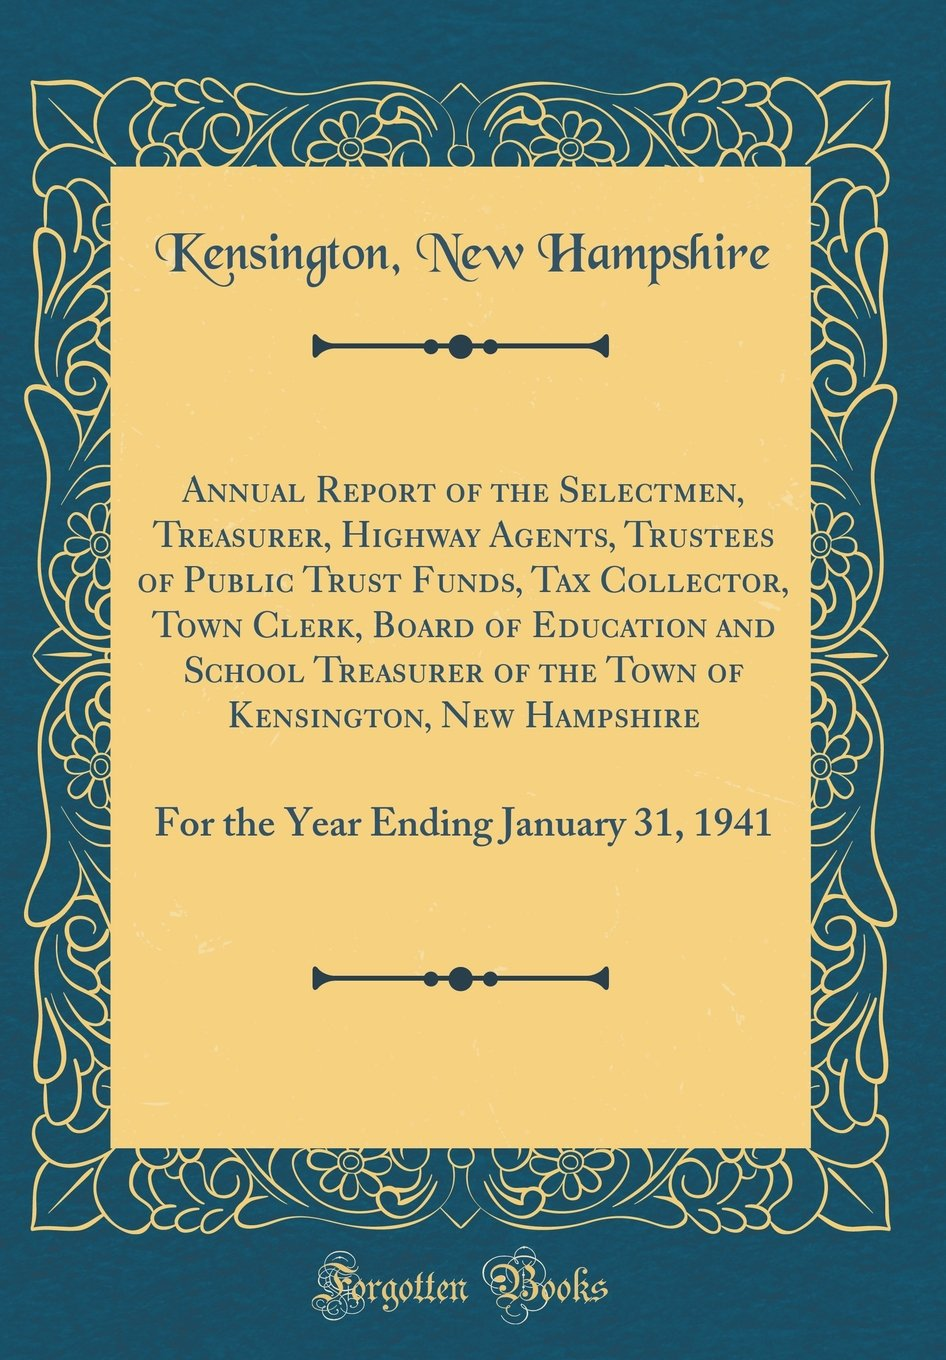 Read Online Annual Report of the Selectmen, Treasurer, Highway Agents, Trustees of Public Trust Funds, Tax Collector, Town Clerk, Board of Education and School ... Ending January 31, 1941 (Classic Reprint) ebook